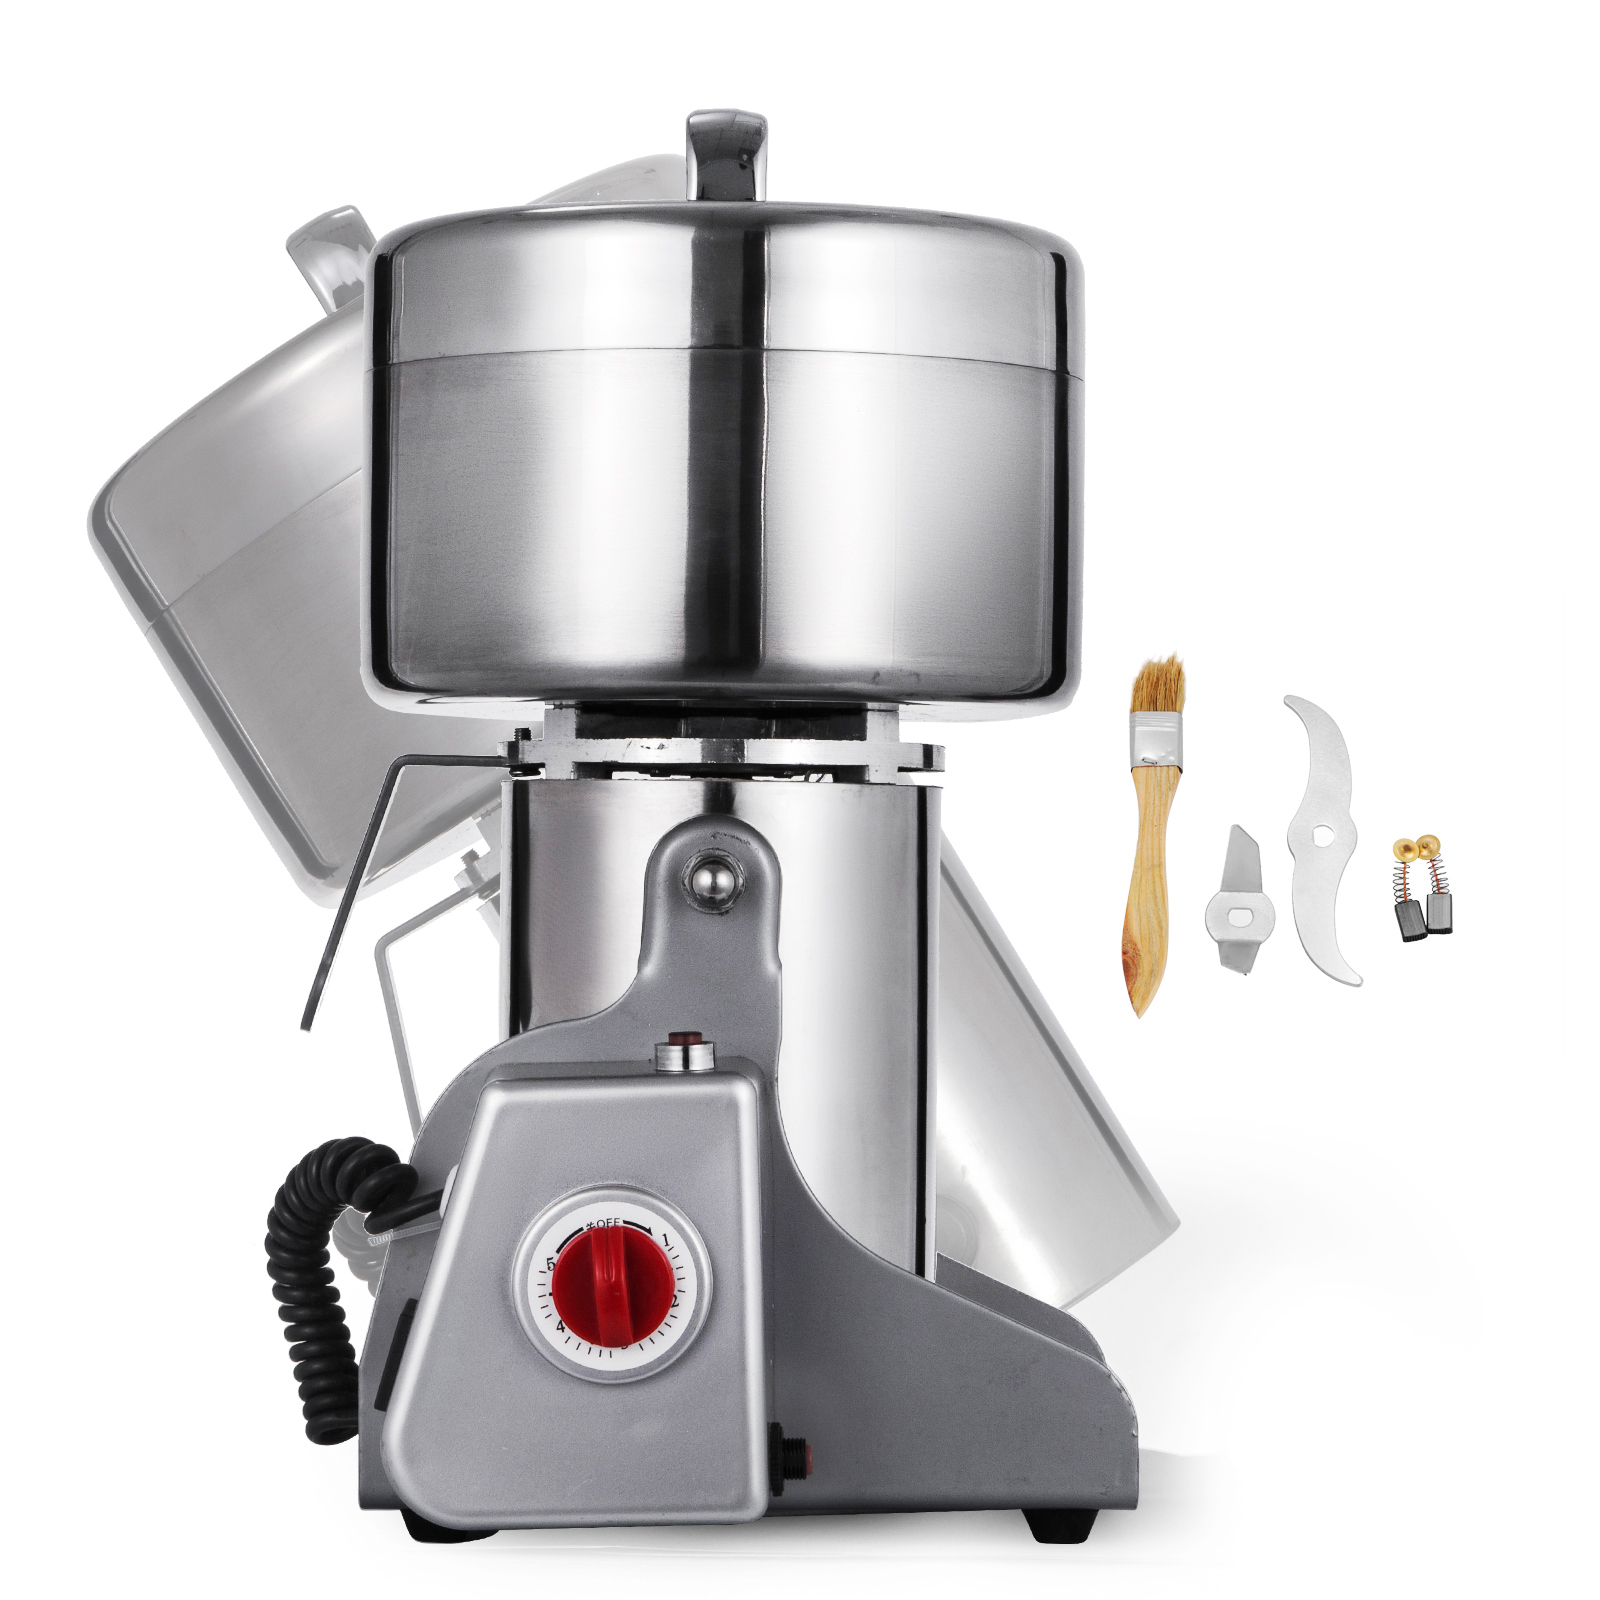 300~2000g Electric Herb Grain Mill Grinder 36000R//MIN stainless steel Coffee